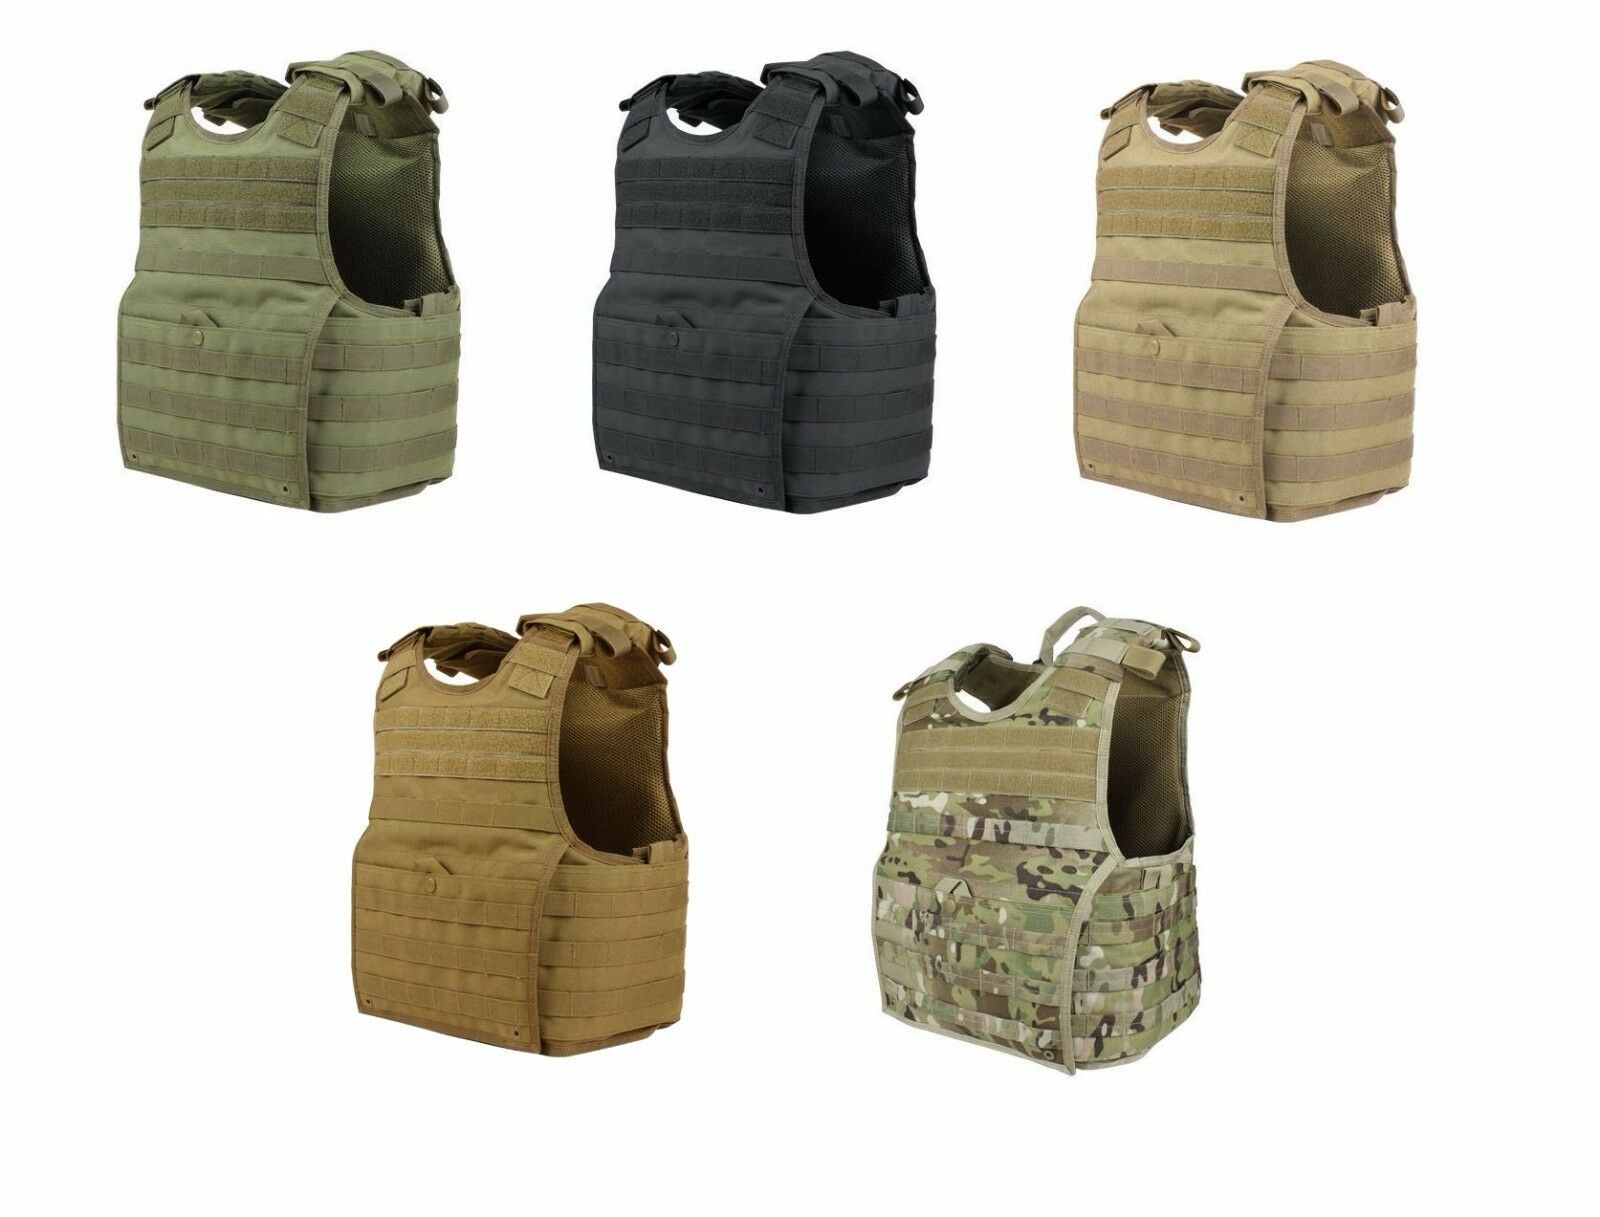 Condor XPC EXO Plate Carrier Tactical Armored Vest 1 Year Warranty